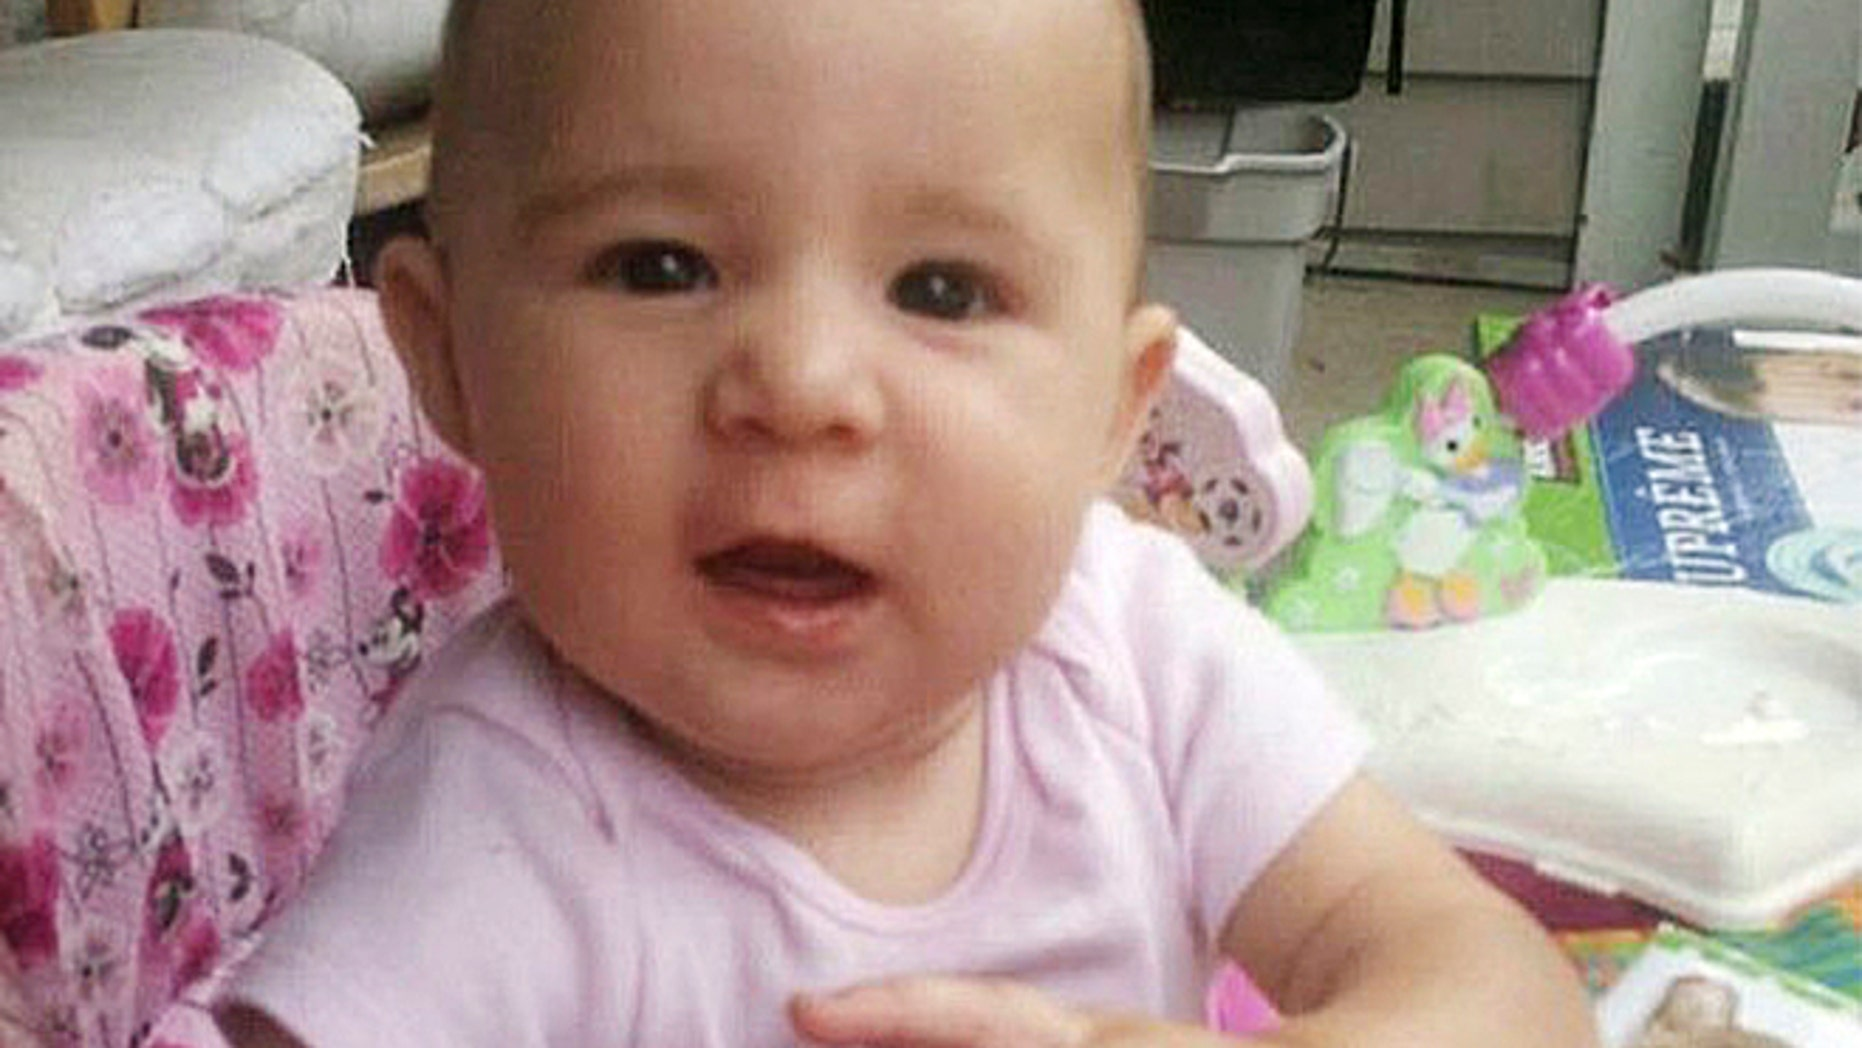 This undated Graham family photo shows 6-month-old Ember Skye Graham.